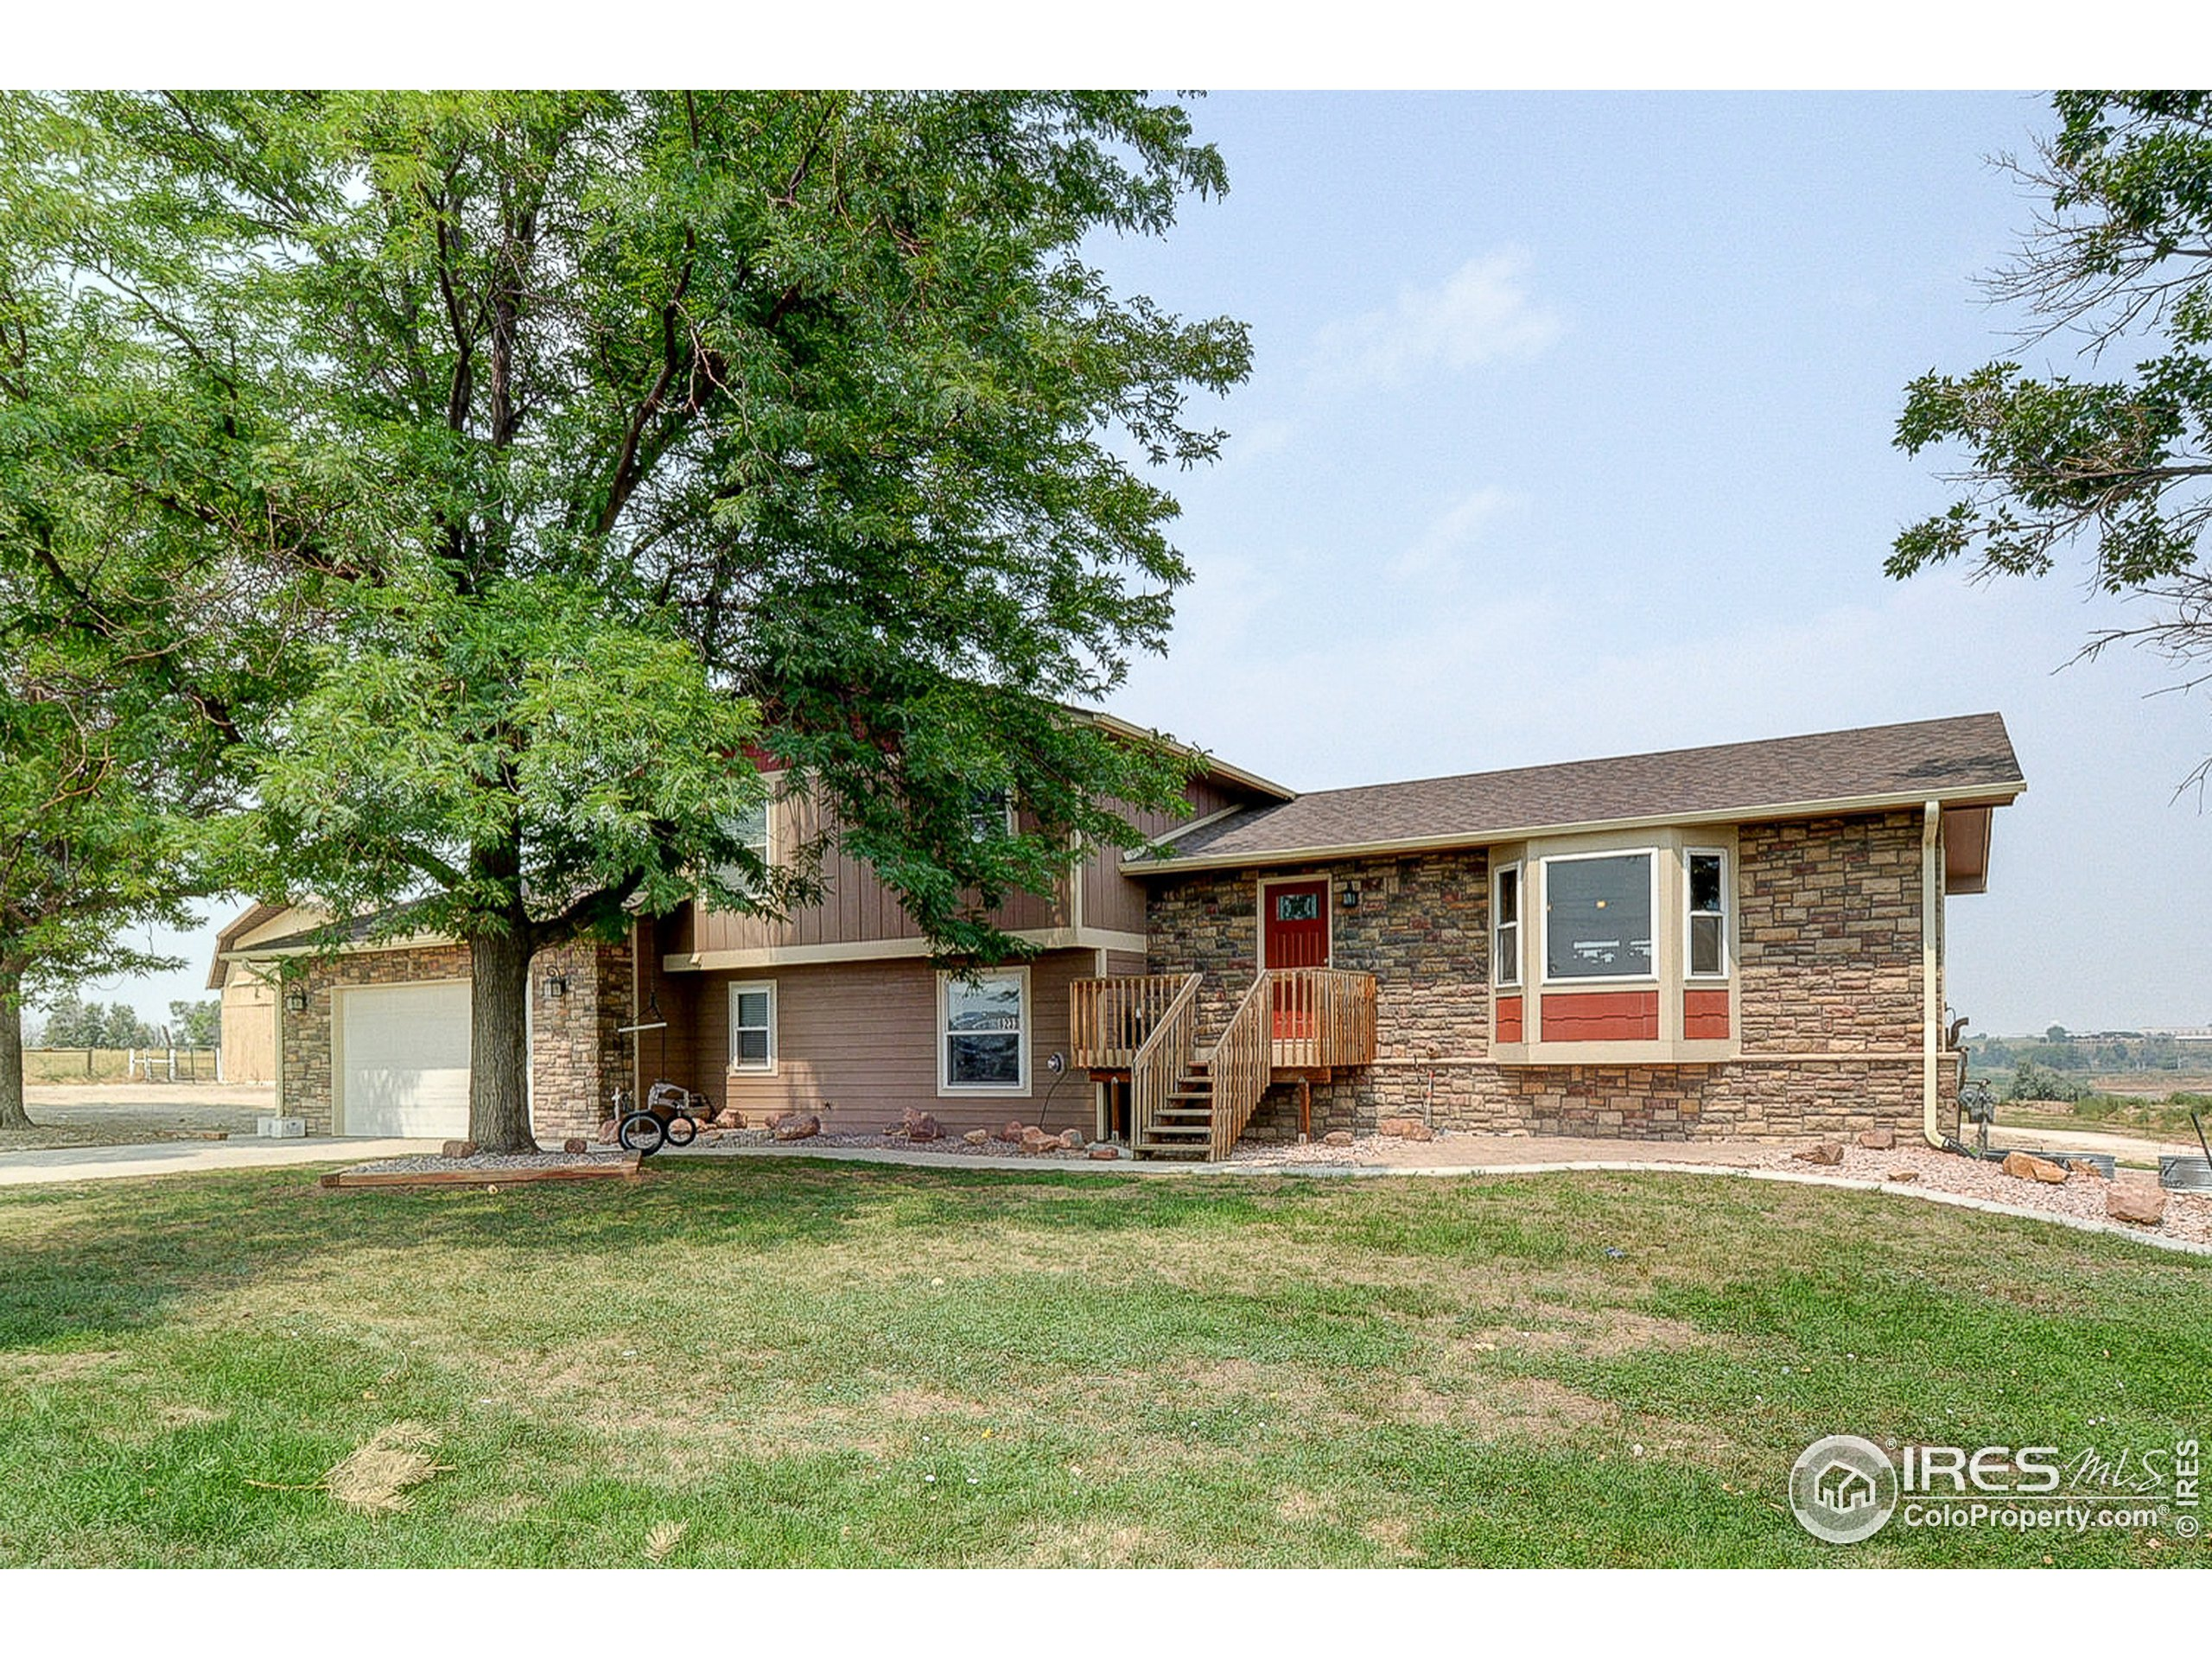 8233 E County Road 18, Johnstown, CO 80534